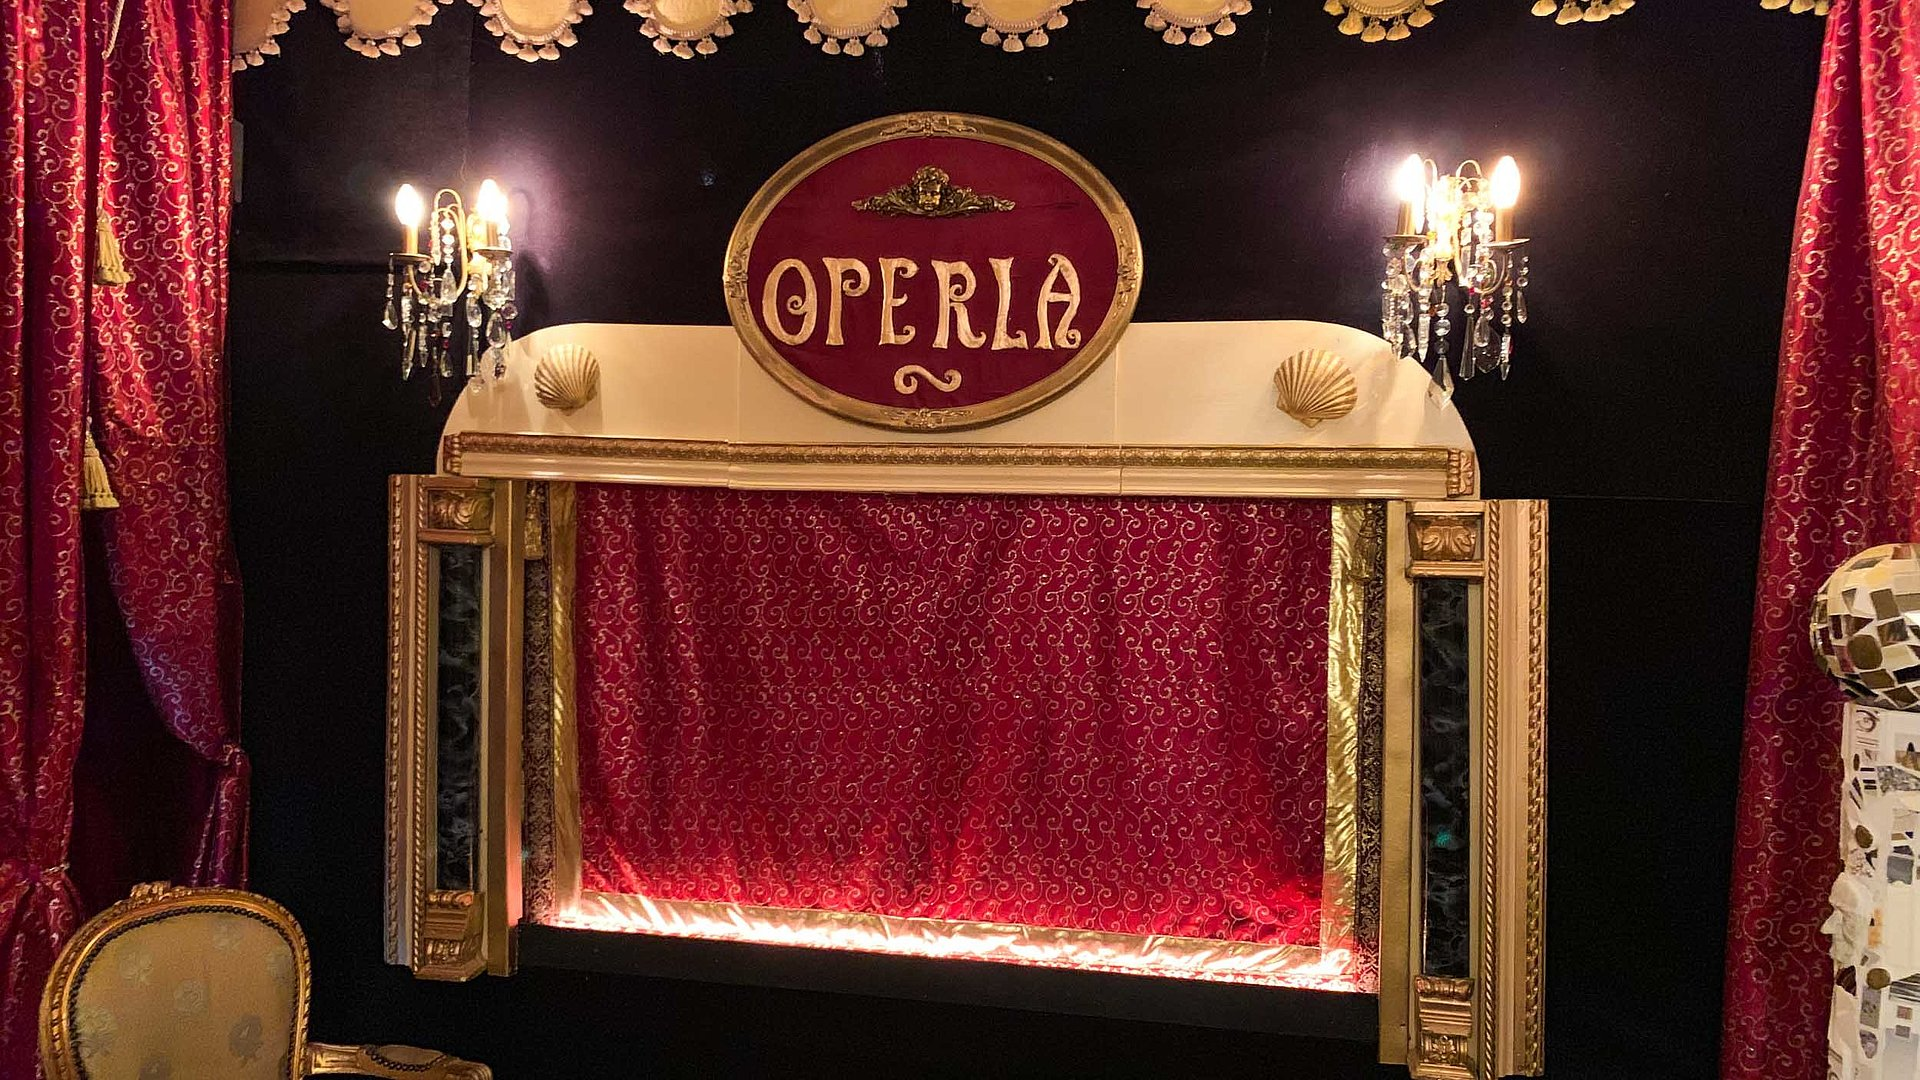 Marionettentheater Operla in Bayreuth